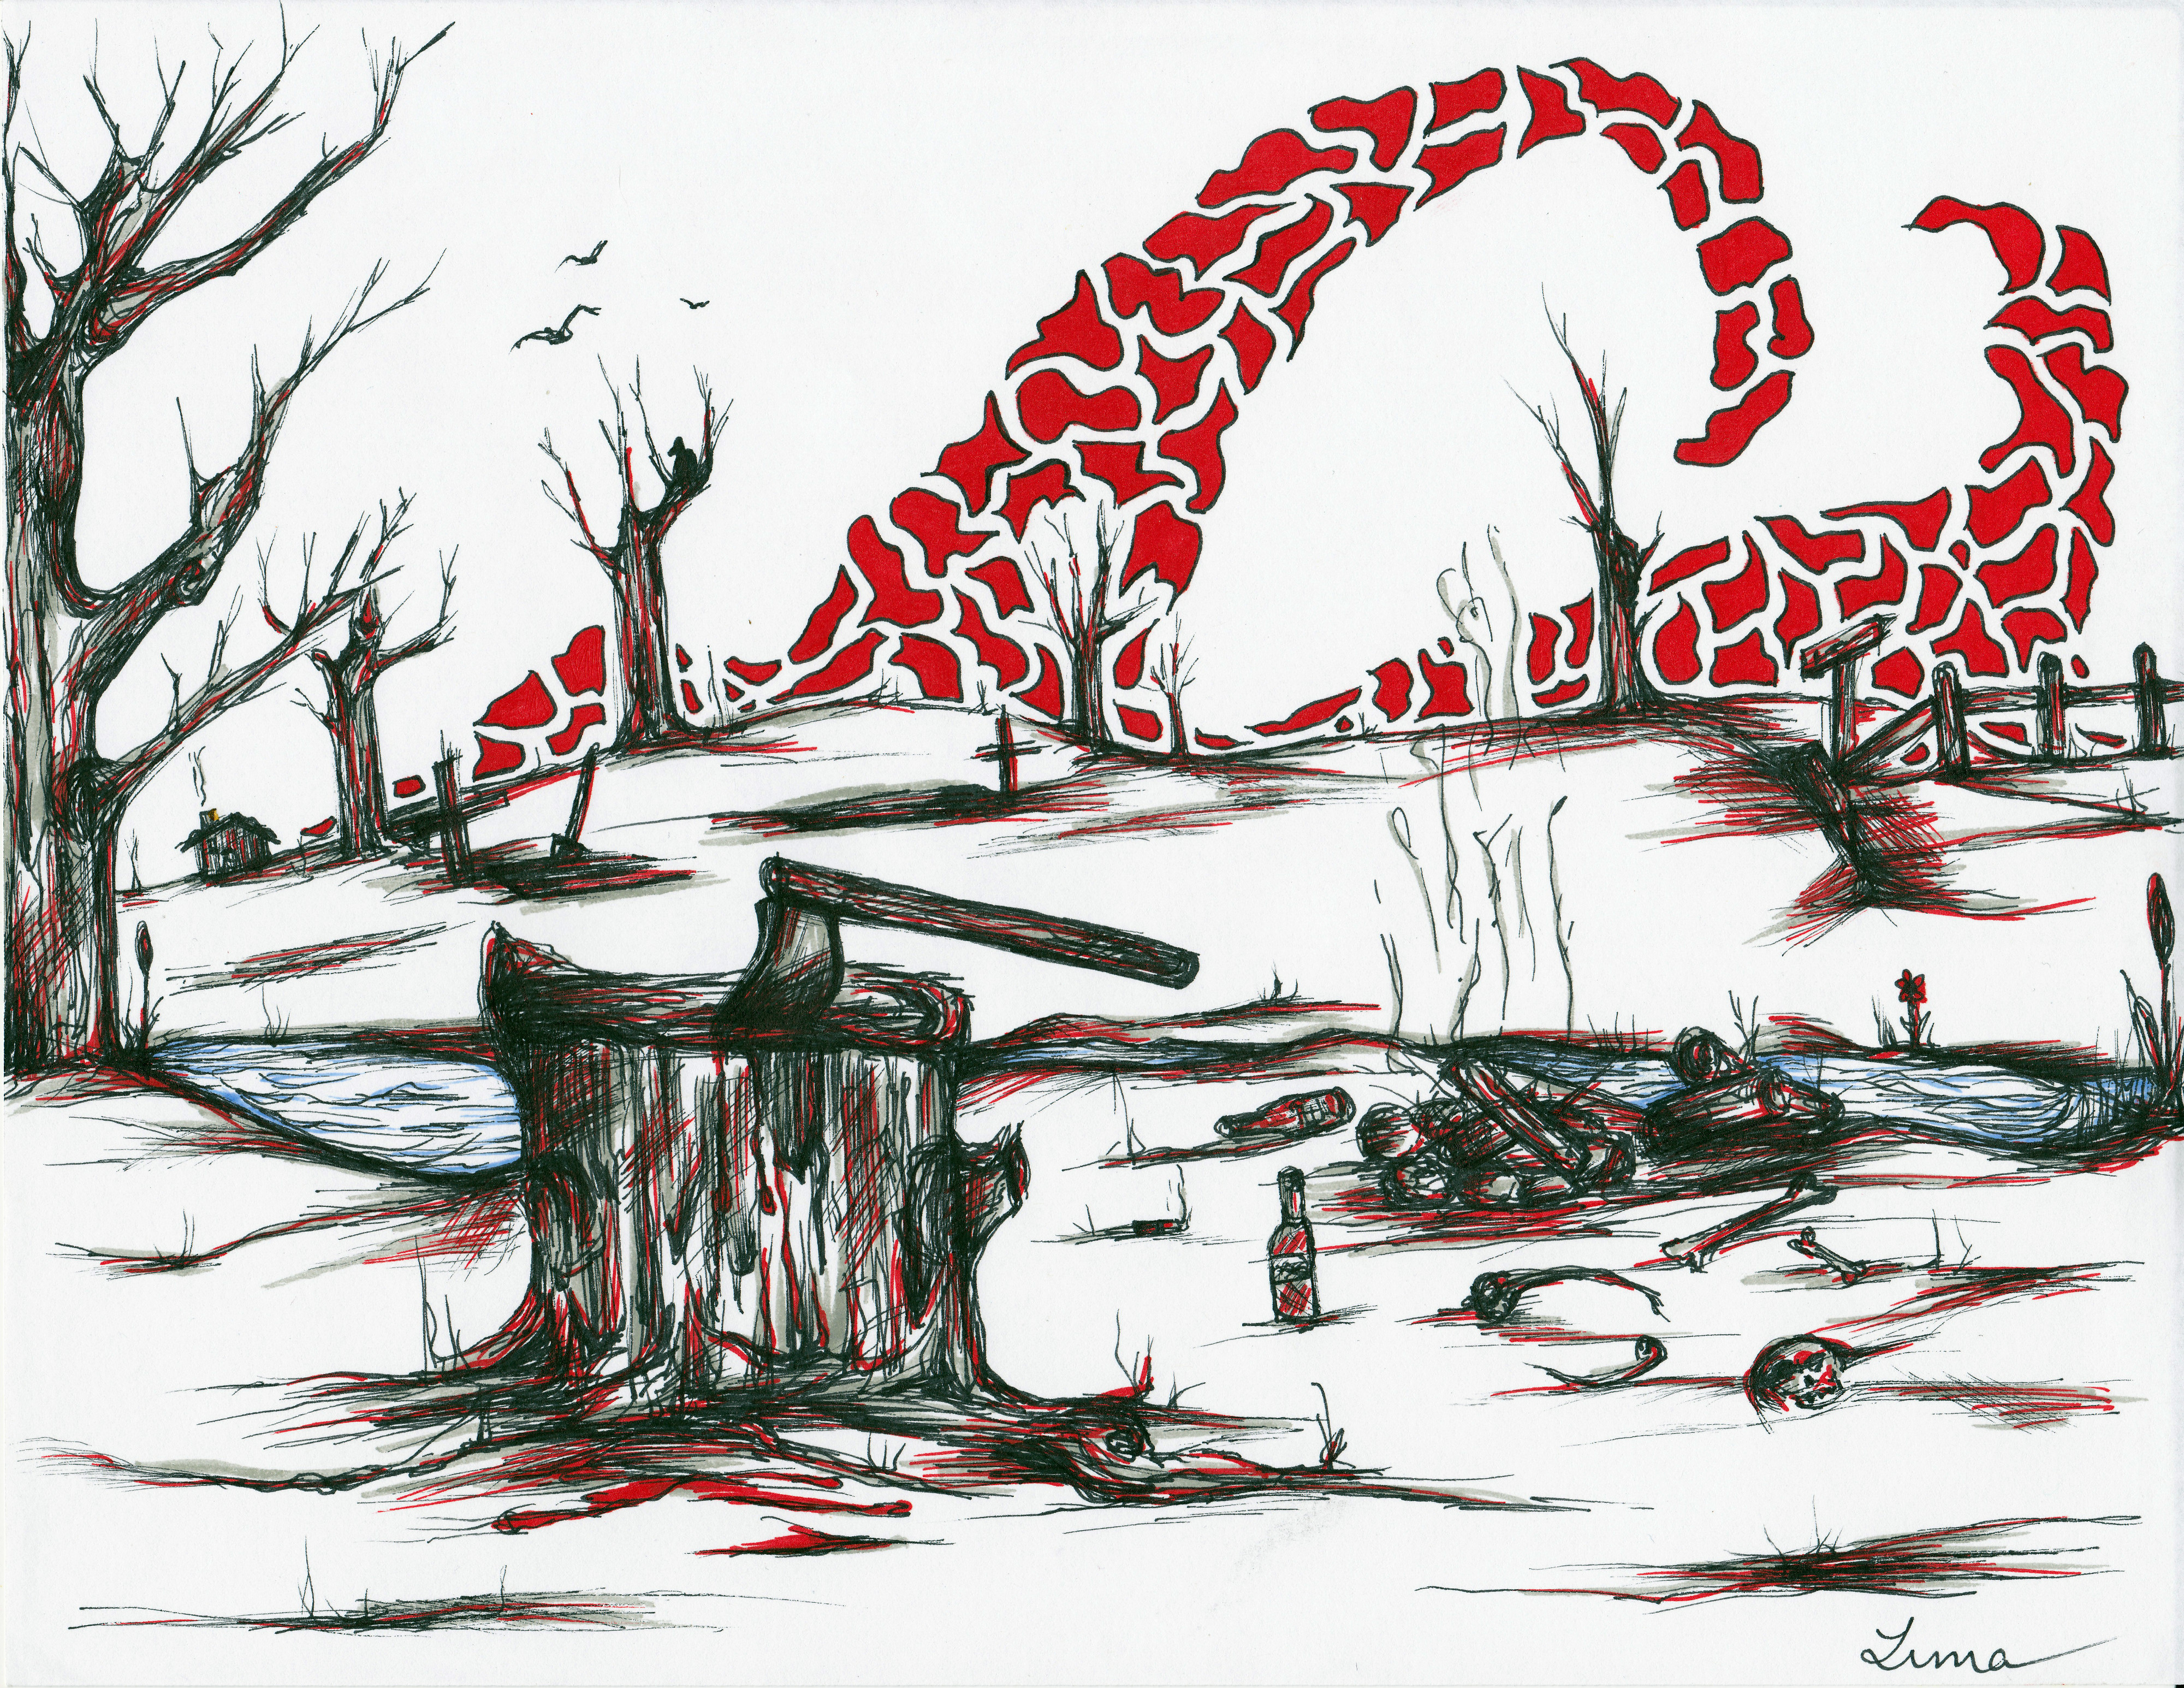 'Chopping Block - The Red 4' by graffitica